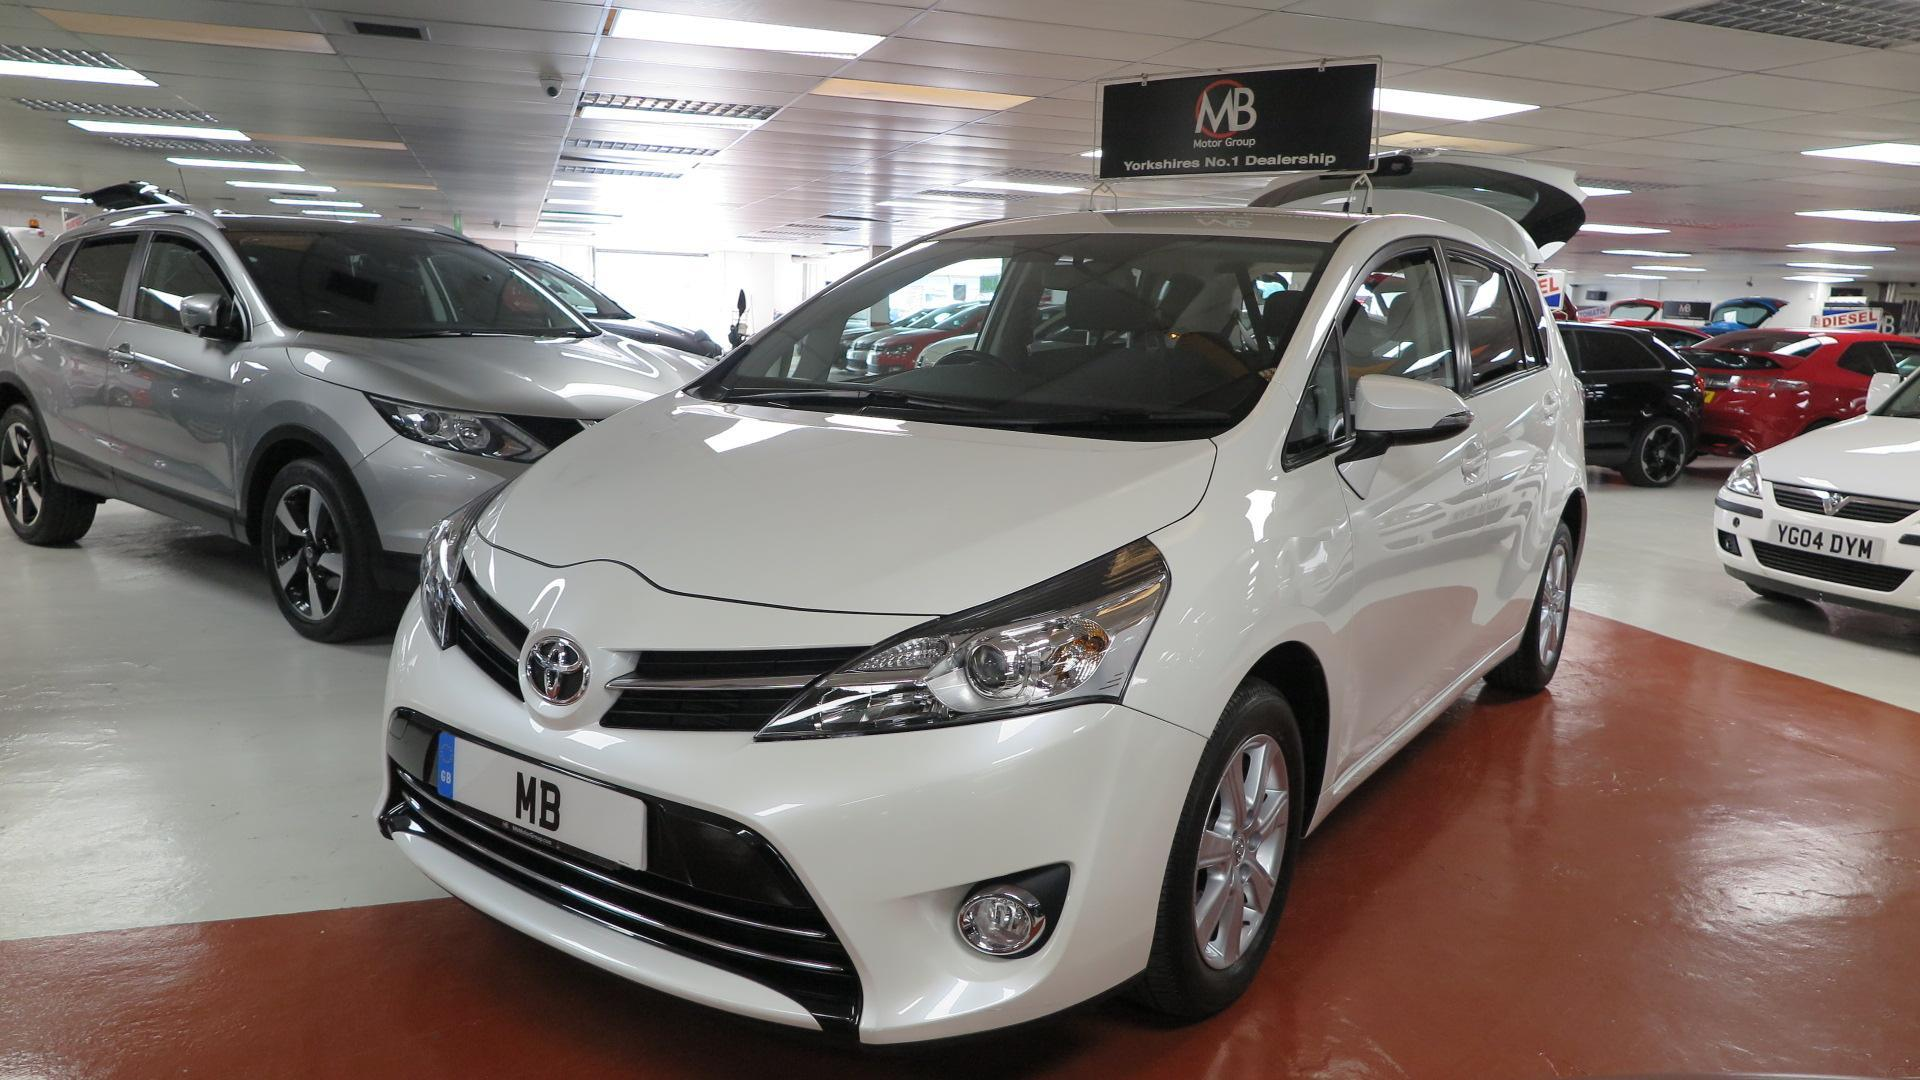 Toyota Verso 1.6 D-4D Icon [Start Stop] **7 SEATS**DAB BT AUDIO** MPV Diesel PEARL WHITE